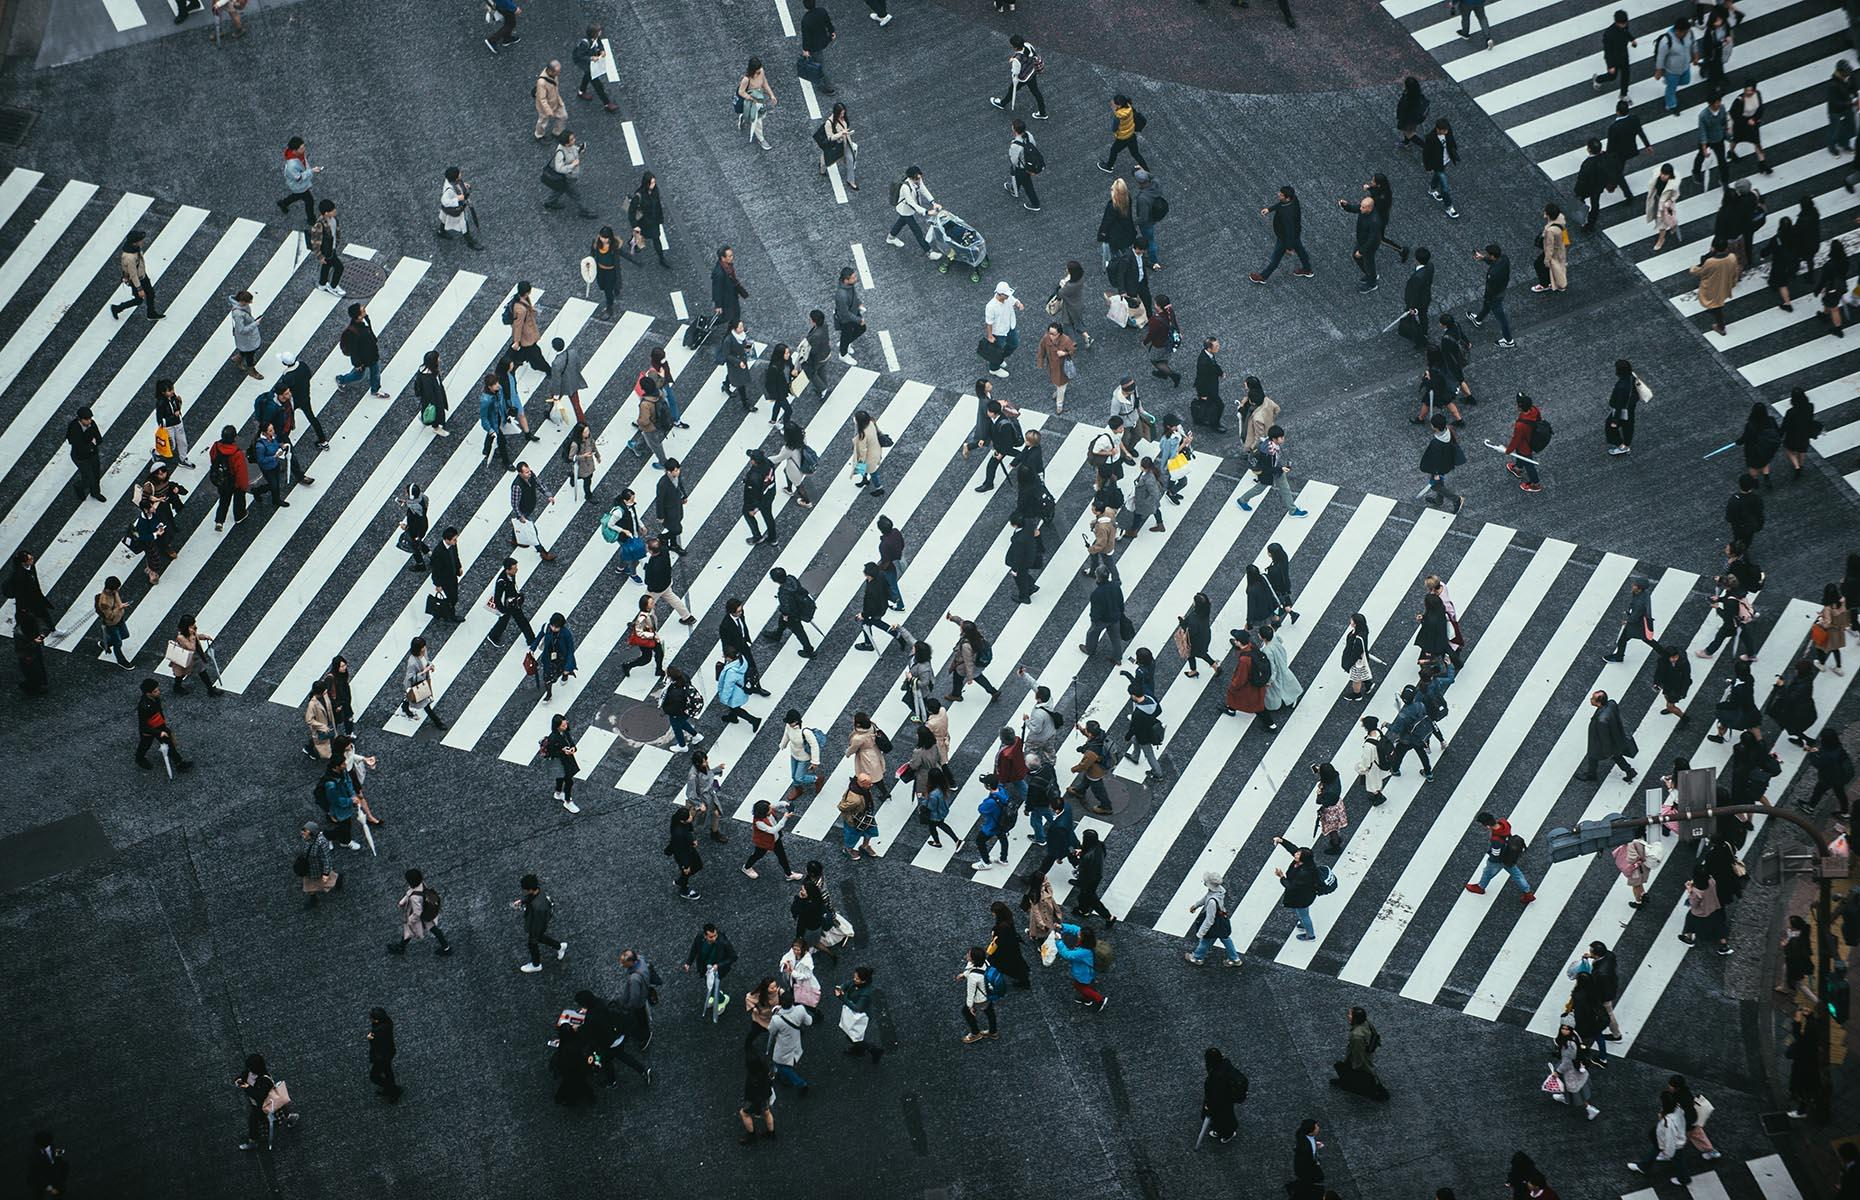 Slide 4 of 41: Deemed the world's busiest pedestrian crossing, you'll find it in an Asian capital, home to almost 10 million residents.